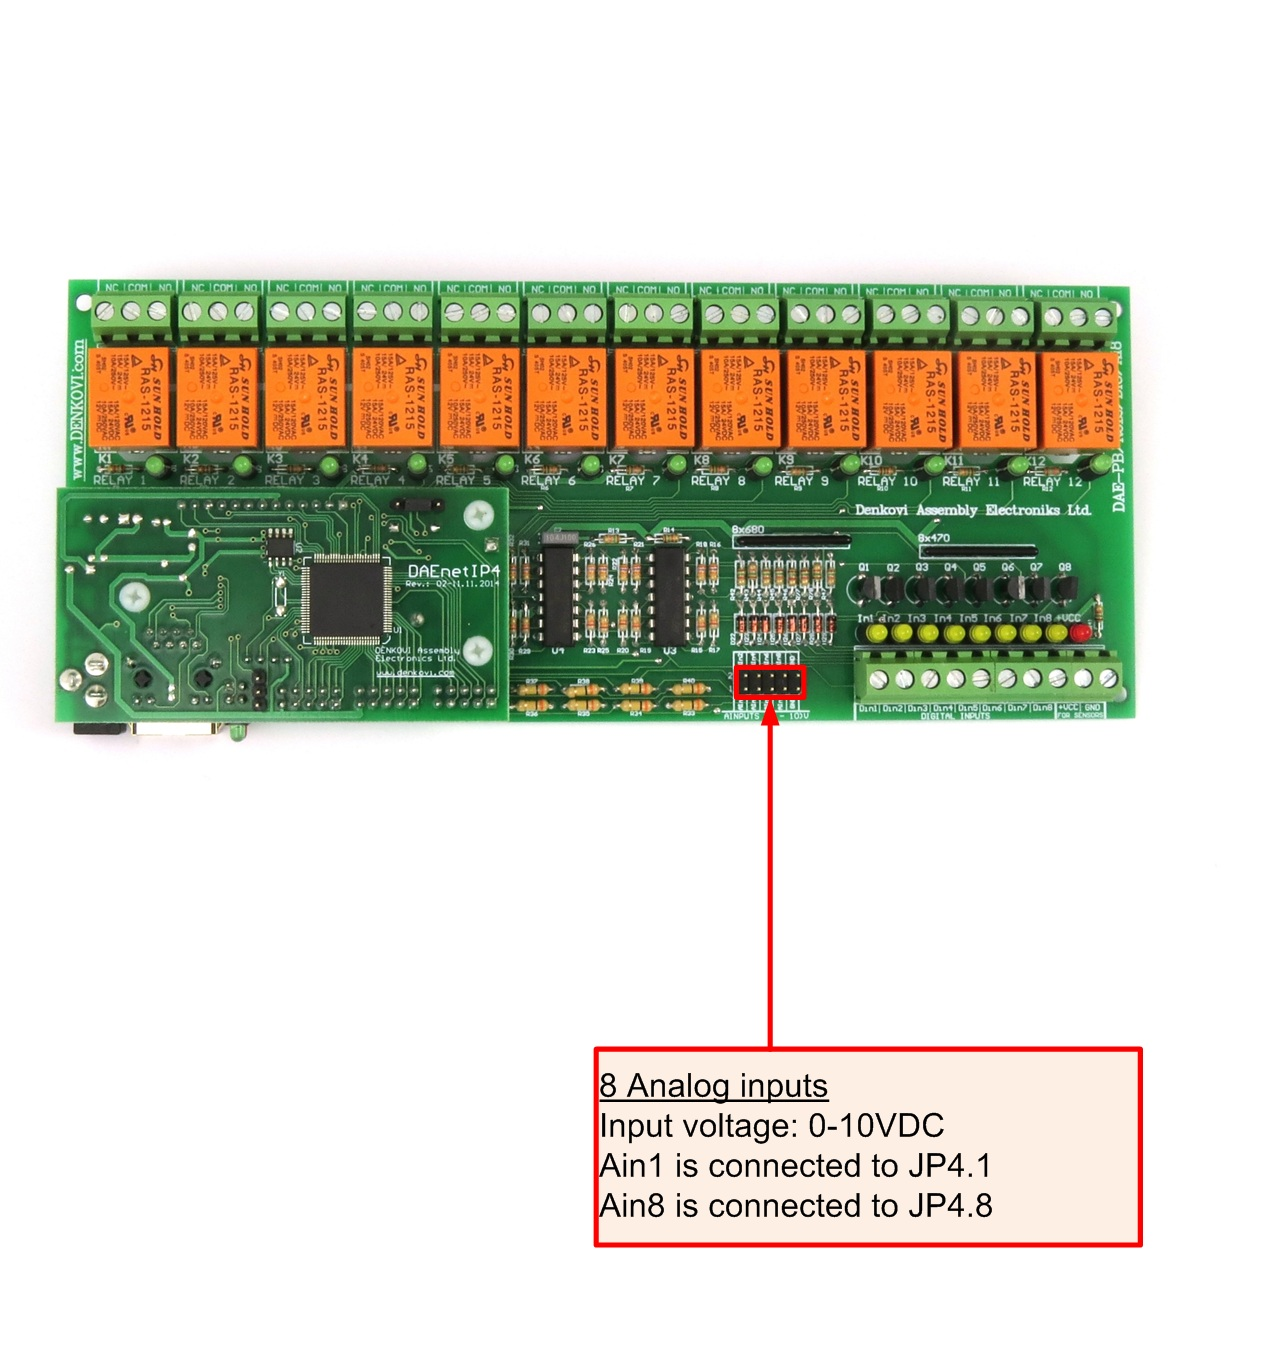 Dae An010 Connecting Analog Sensors To Daenetip4 Snmp 12 Relay Digital Temperature Meter Using Lm335 Or Lm135 Adc Port